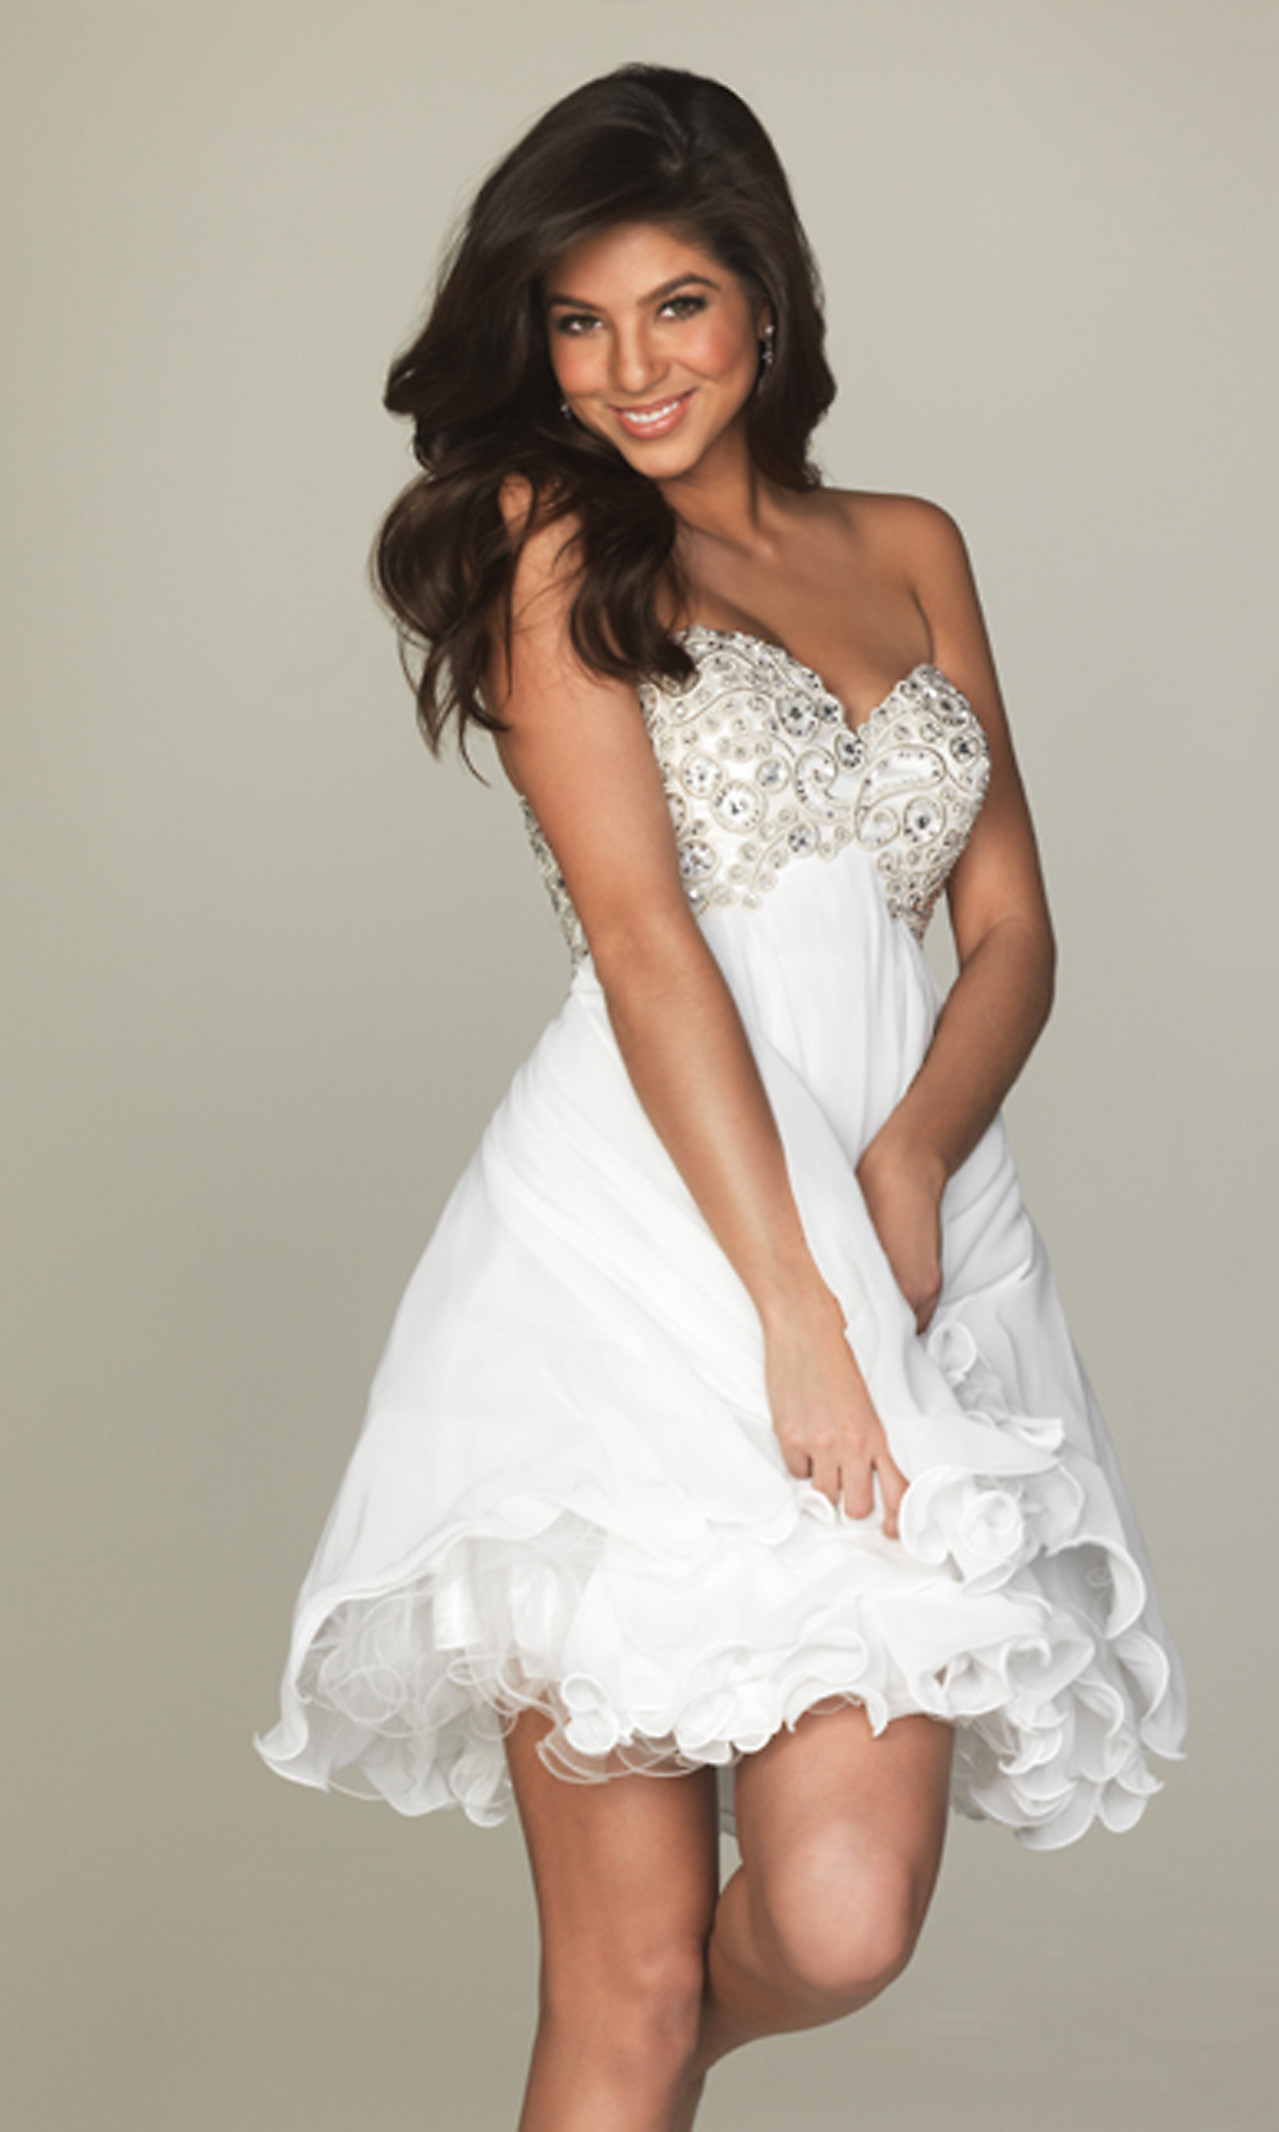 Getting the right white party dresses